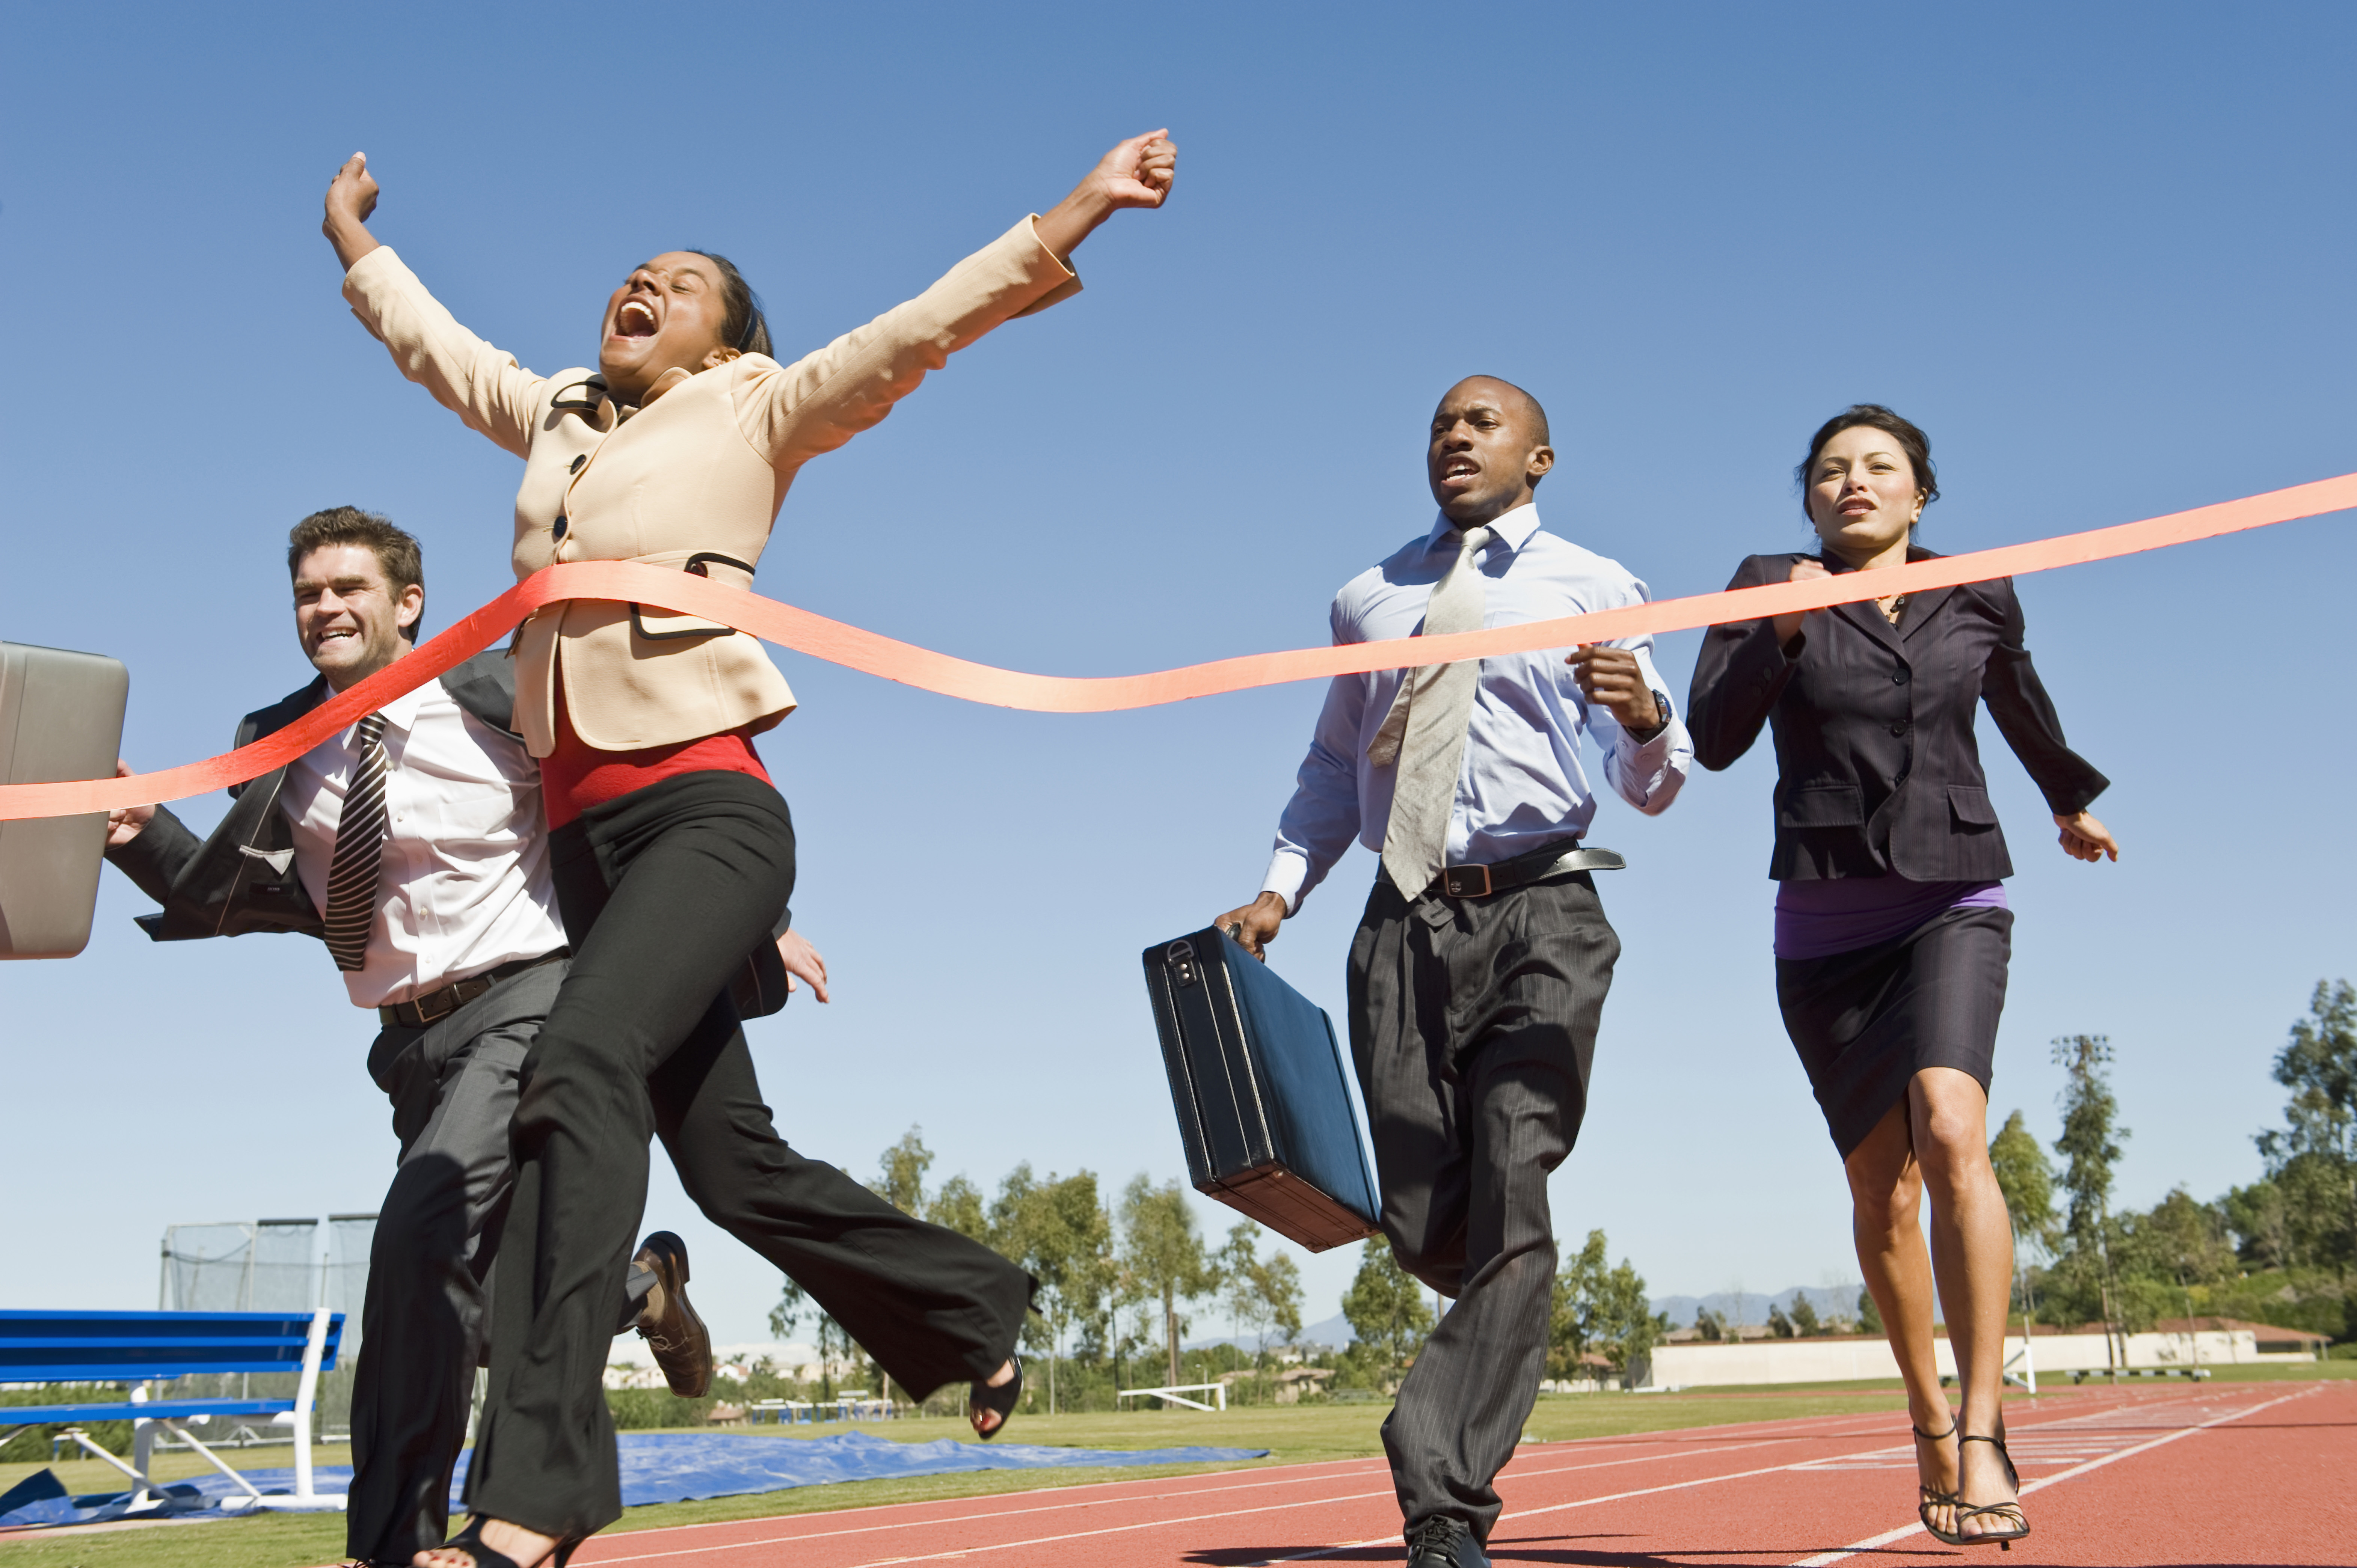 Motion blur shot of a cheerful business woman crossing the finish line (shutterstock_122081617)